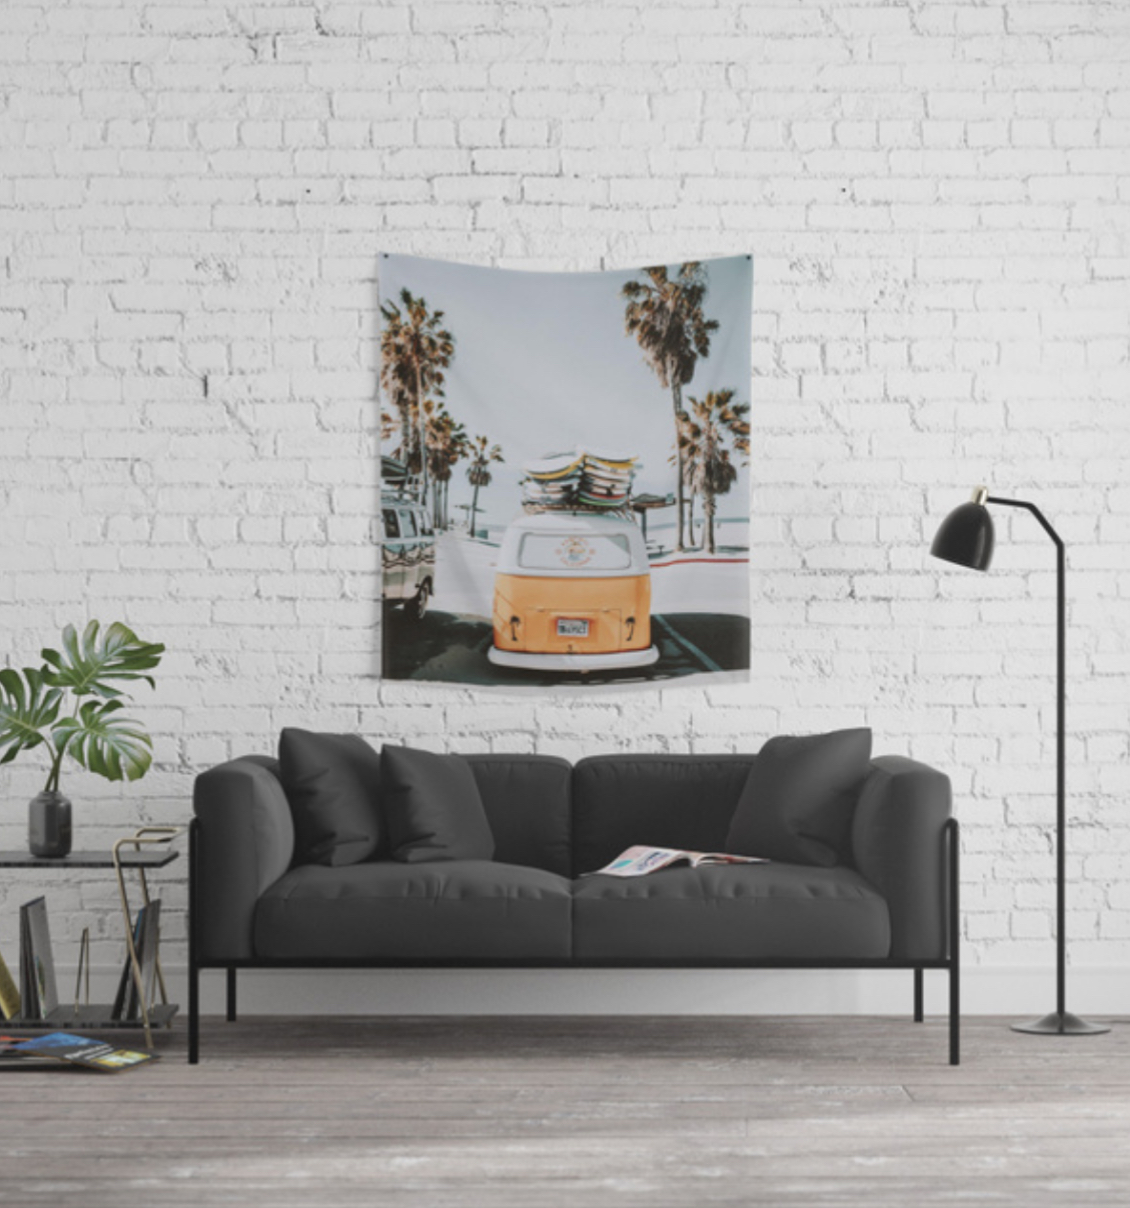 Back to School Shopping Tapestry with van at the beach